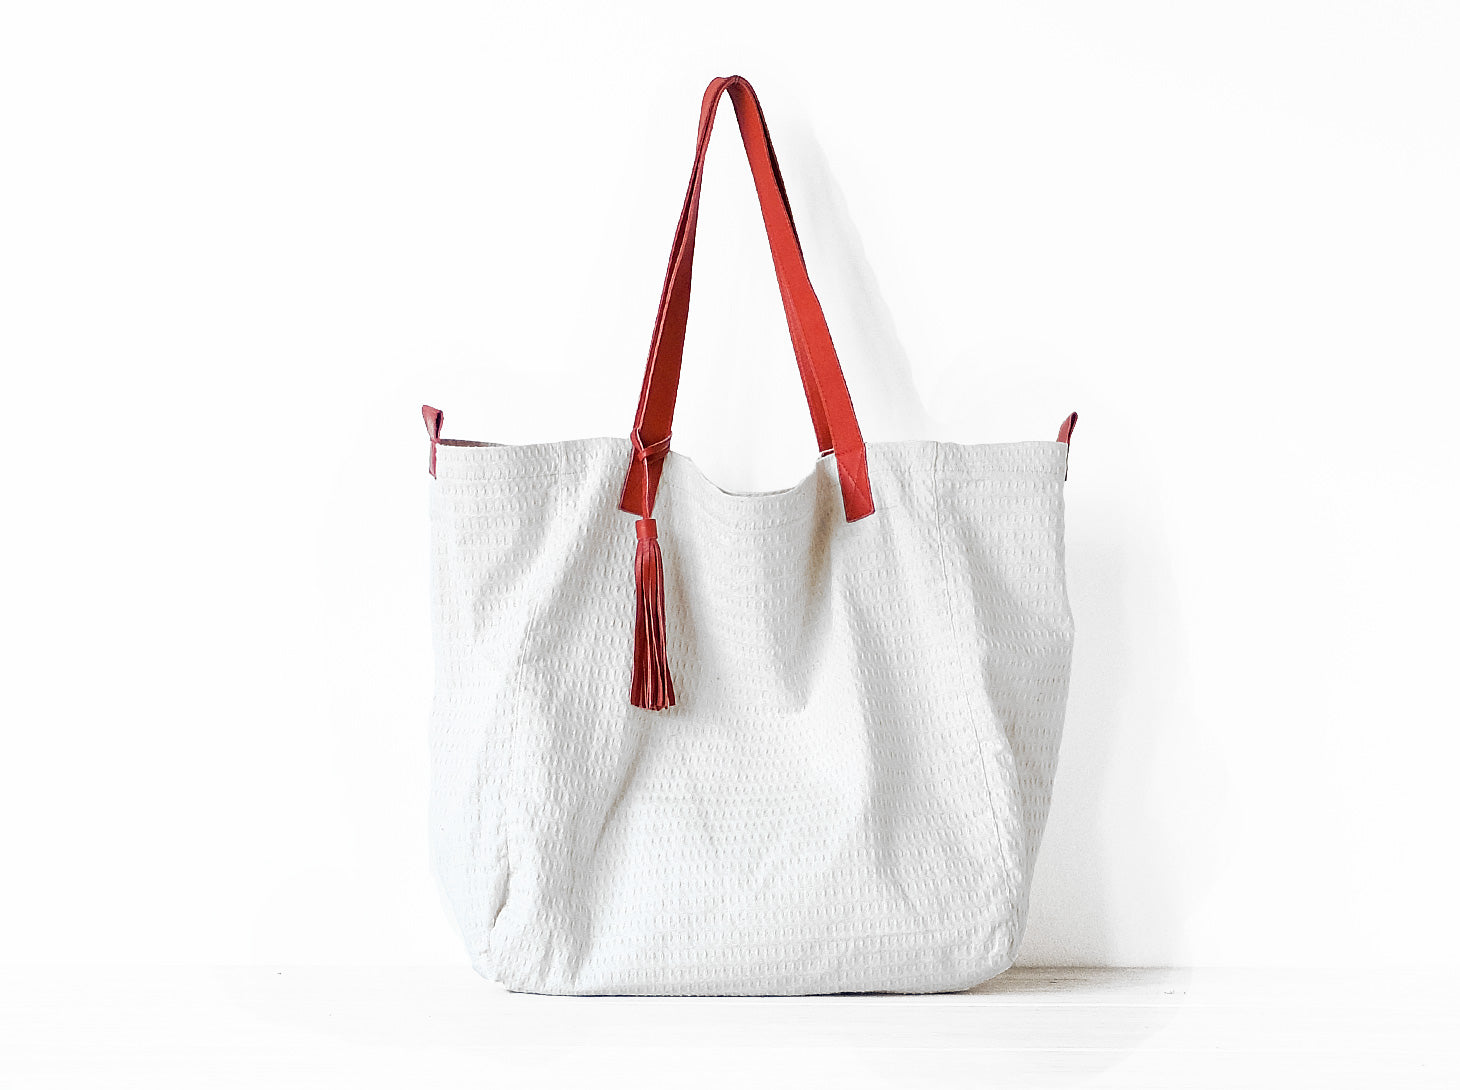 Le Sac is a Vive Ninette tote bag in cotton canvas.